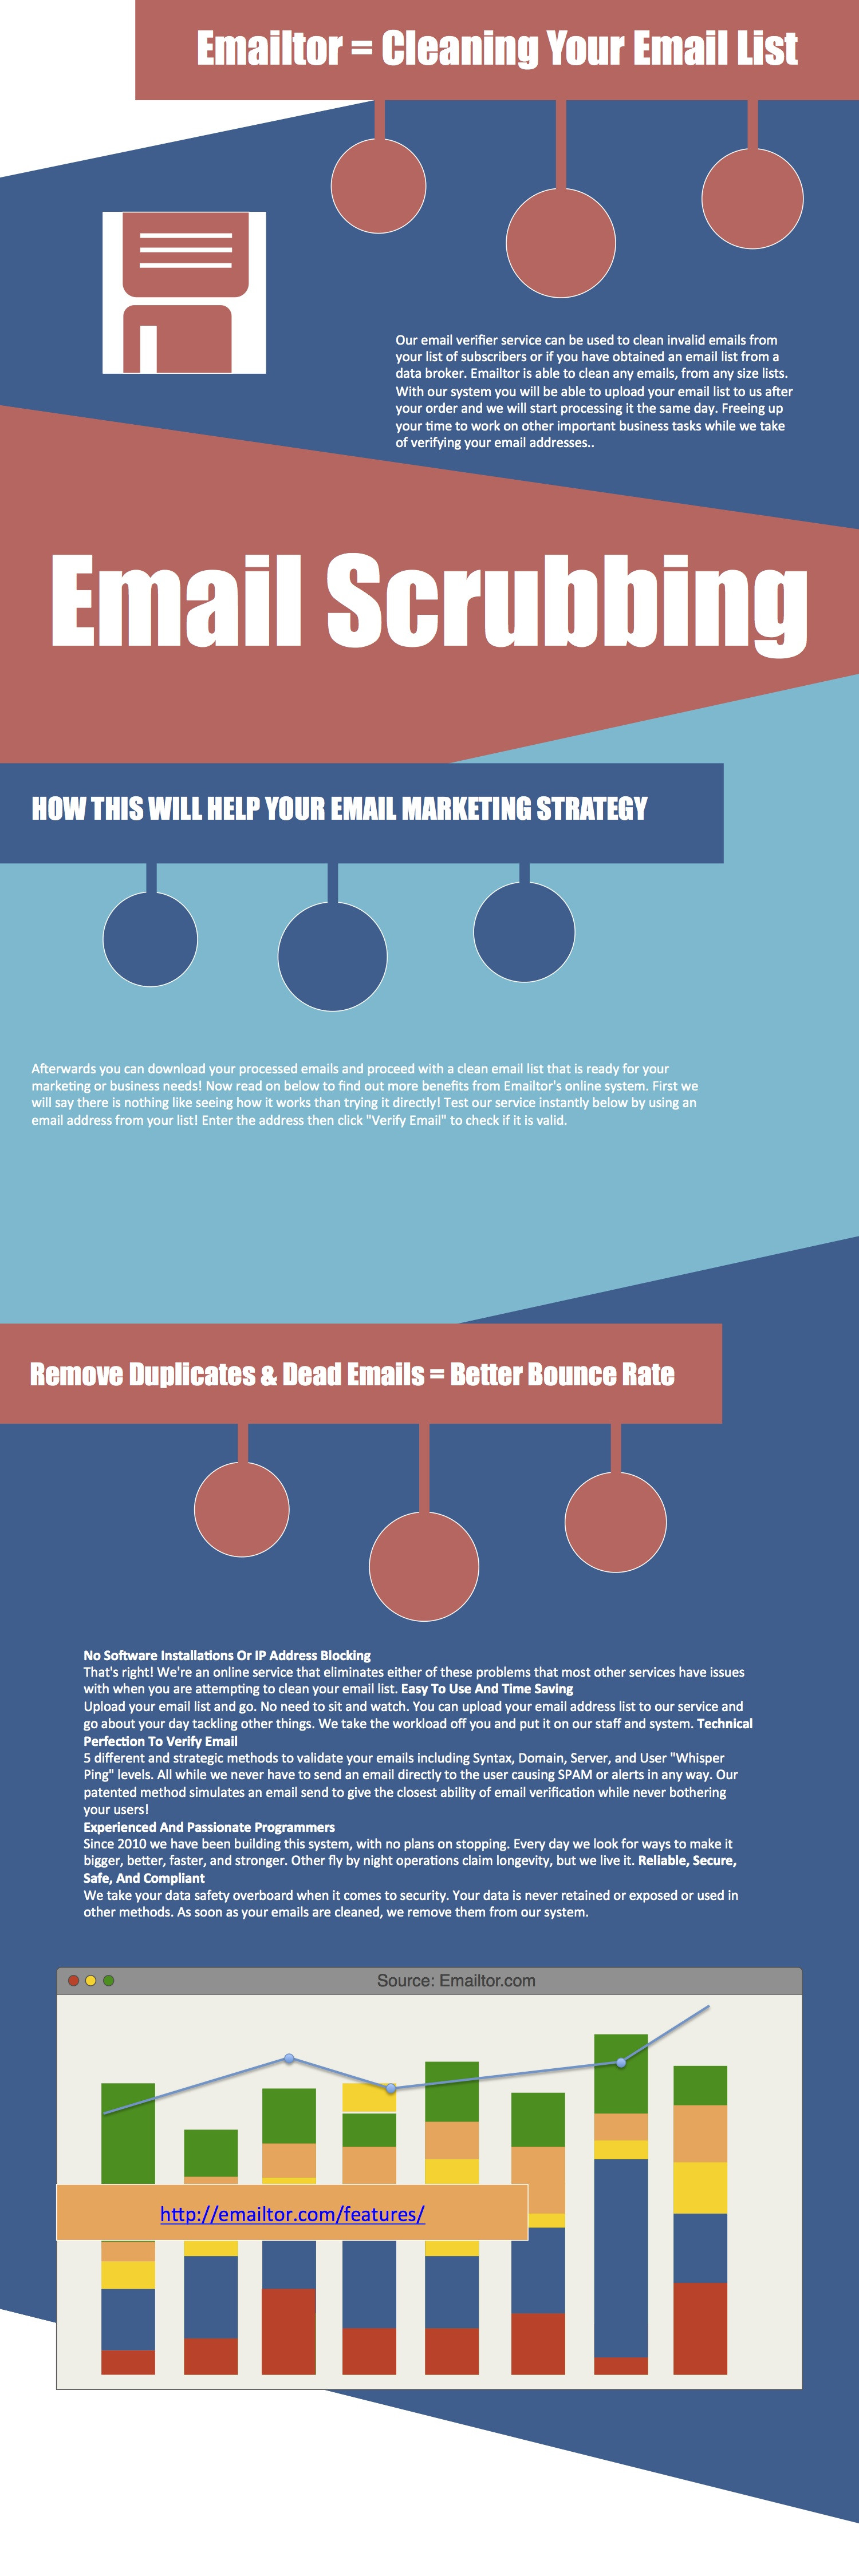 Emailtor.com Reviews - Email List Cleaning Benefits Infographic